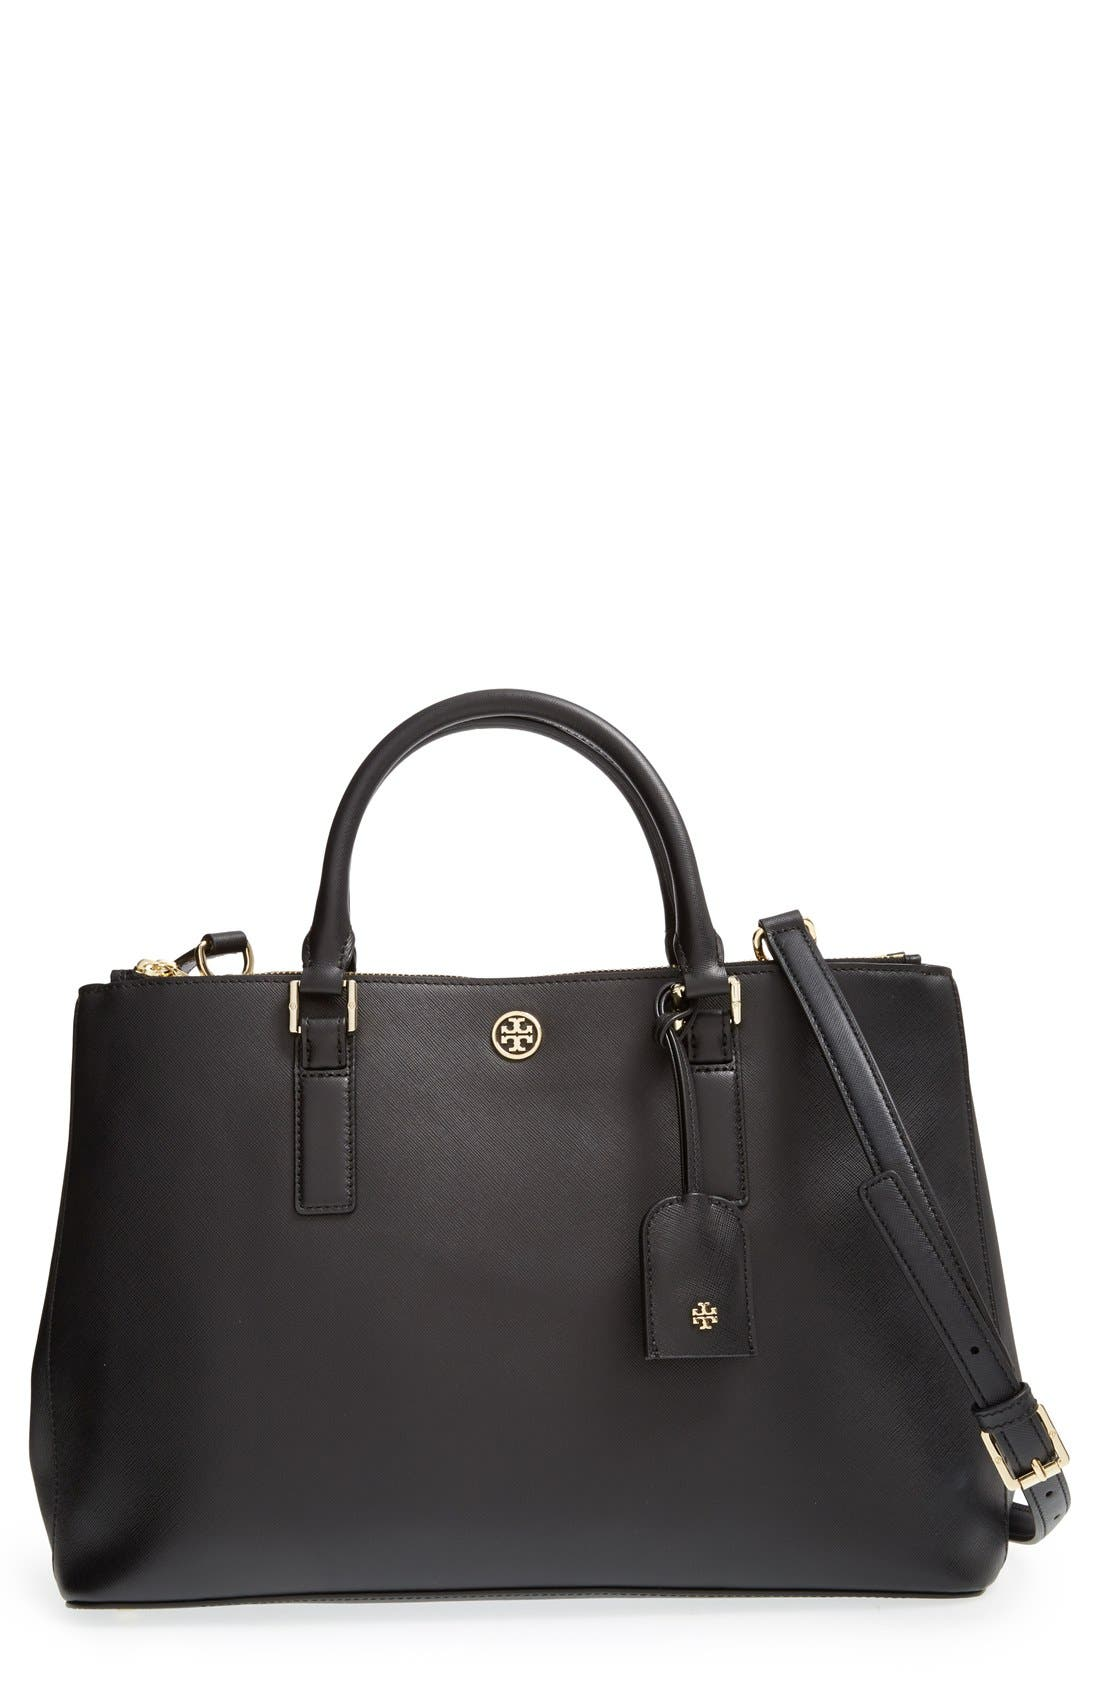 TORY BURCH,                             'Robinson' Double Zip Tote,                             Main thumbnail 1, color,                             001